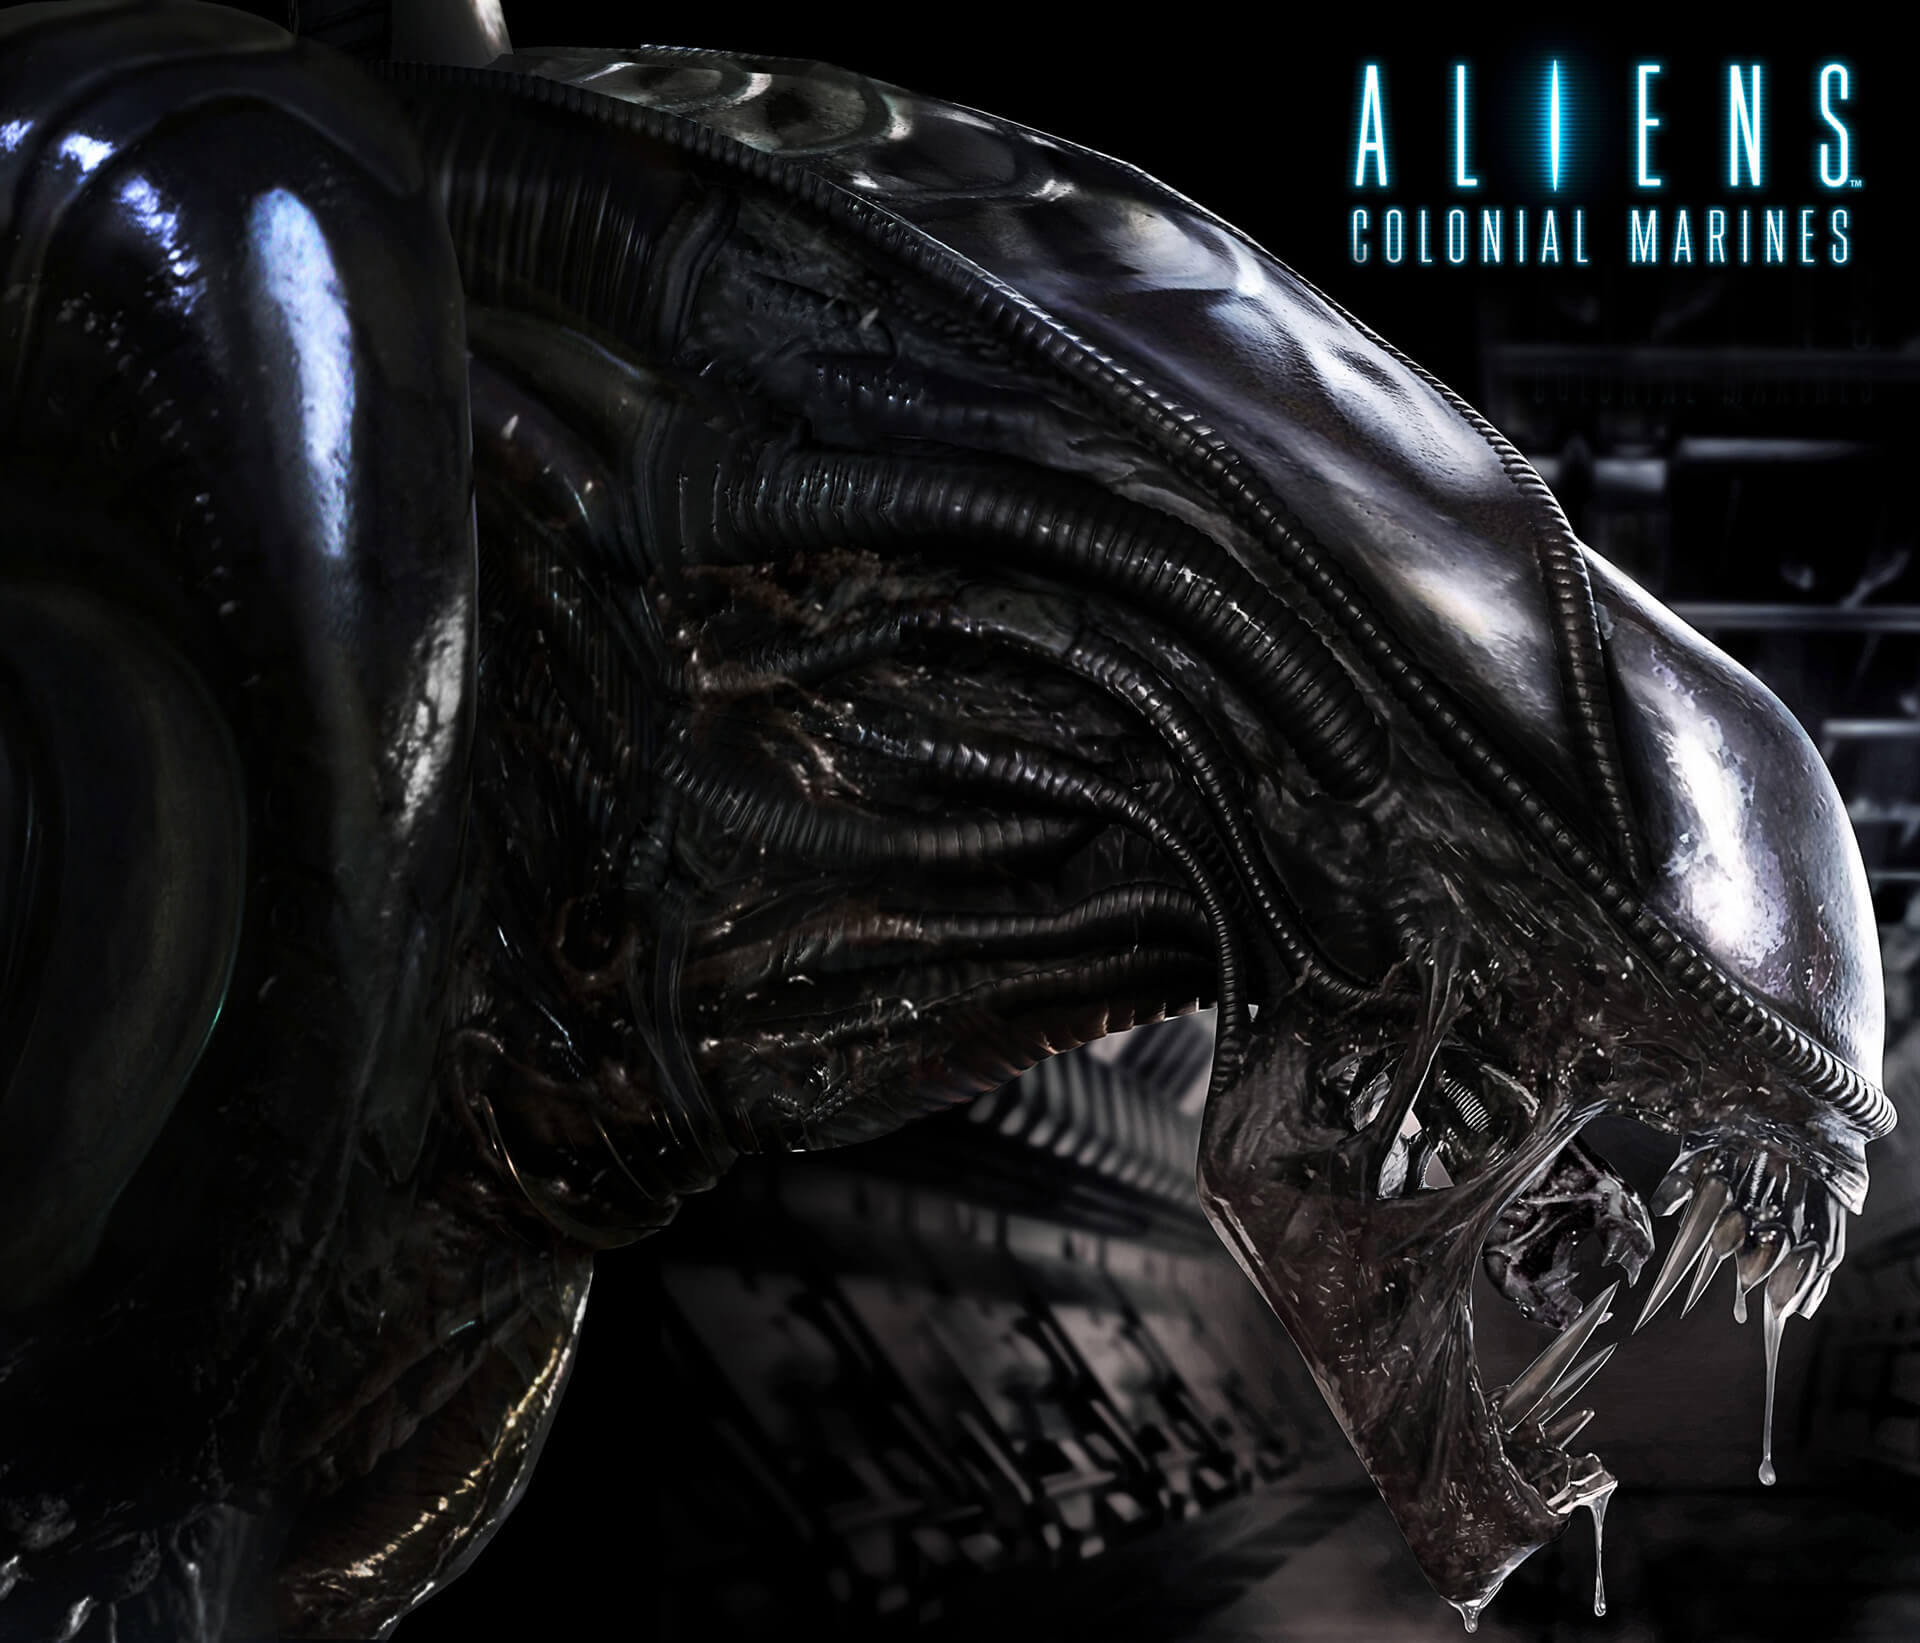 cg rendered model of the alien 3d character created for sega to be used on game packaging for alien colonial marines